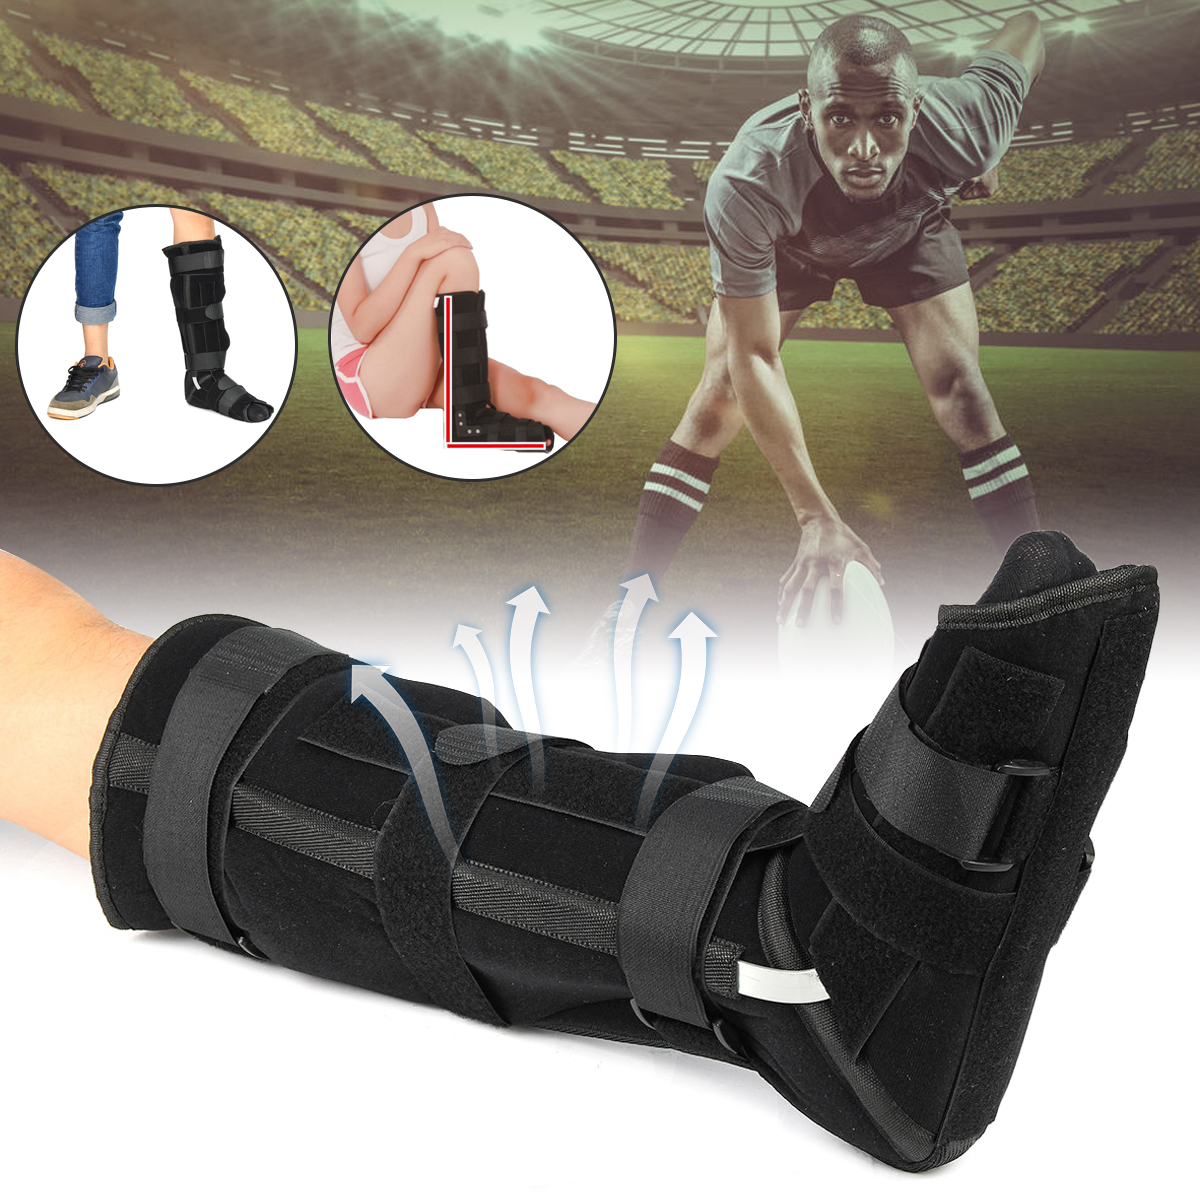 Adjustable Ankle Splint Boot Brace Support Protection Foot Guard Sprains Injury Wrap Tplint Strap endinitis Plantar Unisex